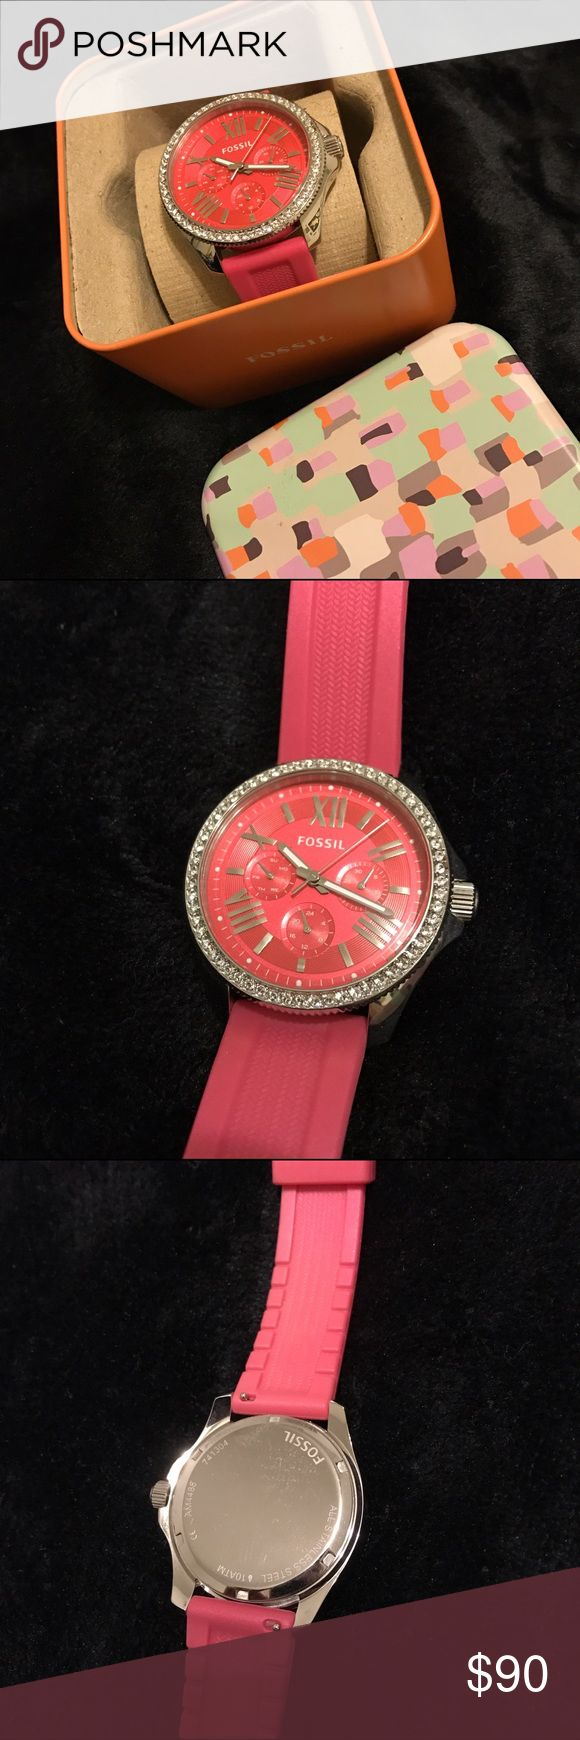 Pink fossil watch Worn Once! Comes in box. Pink blingy Fossil Watch Fossil Jewelry